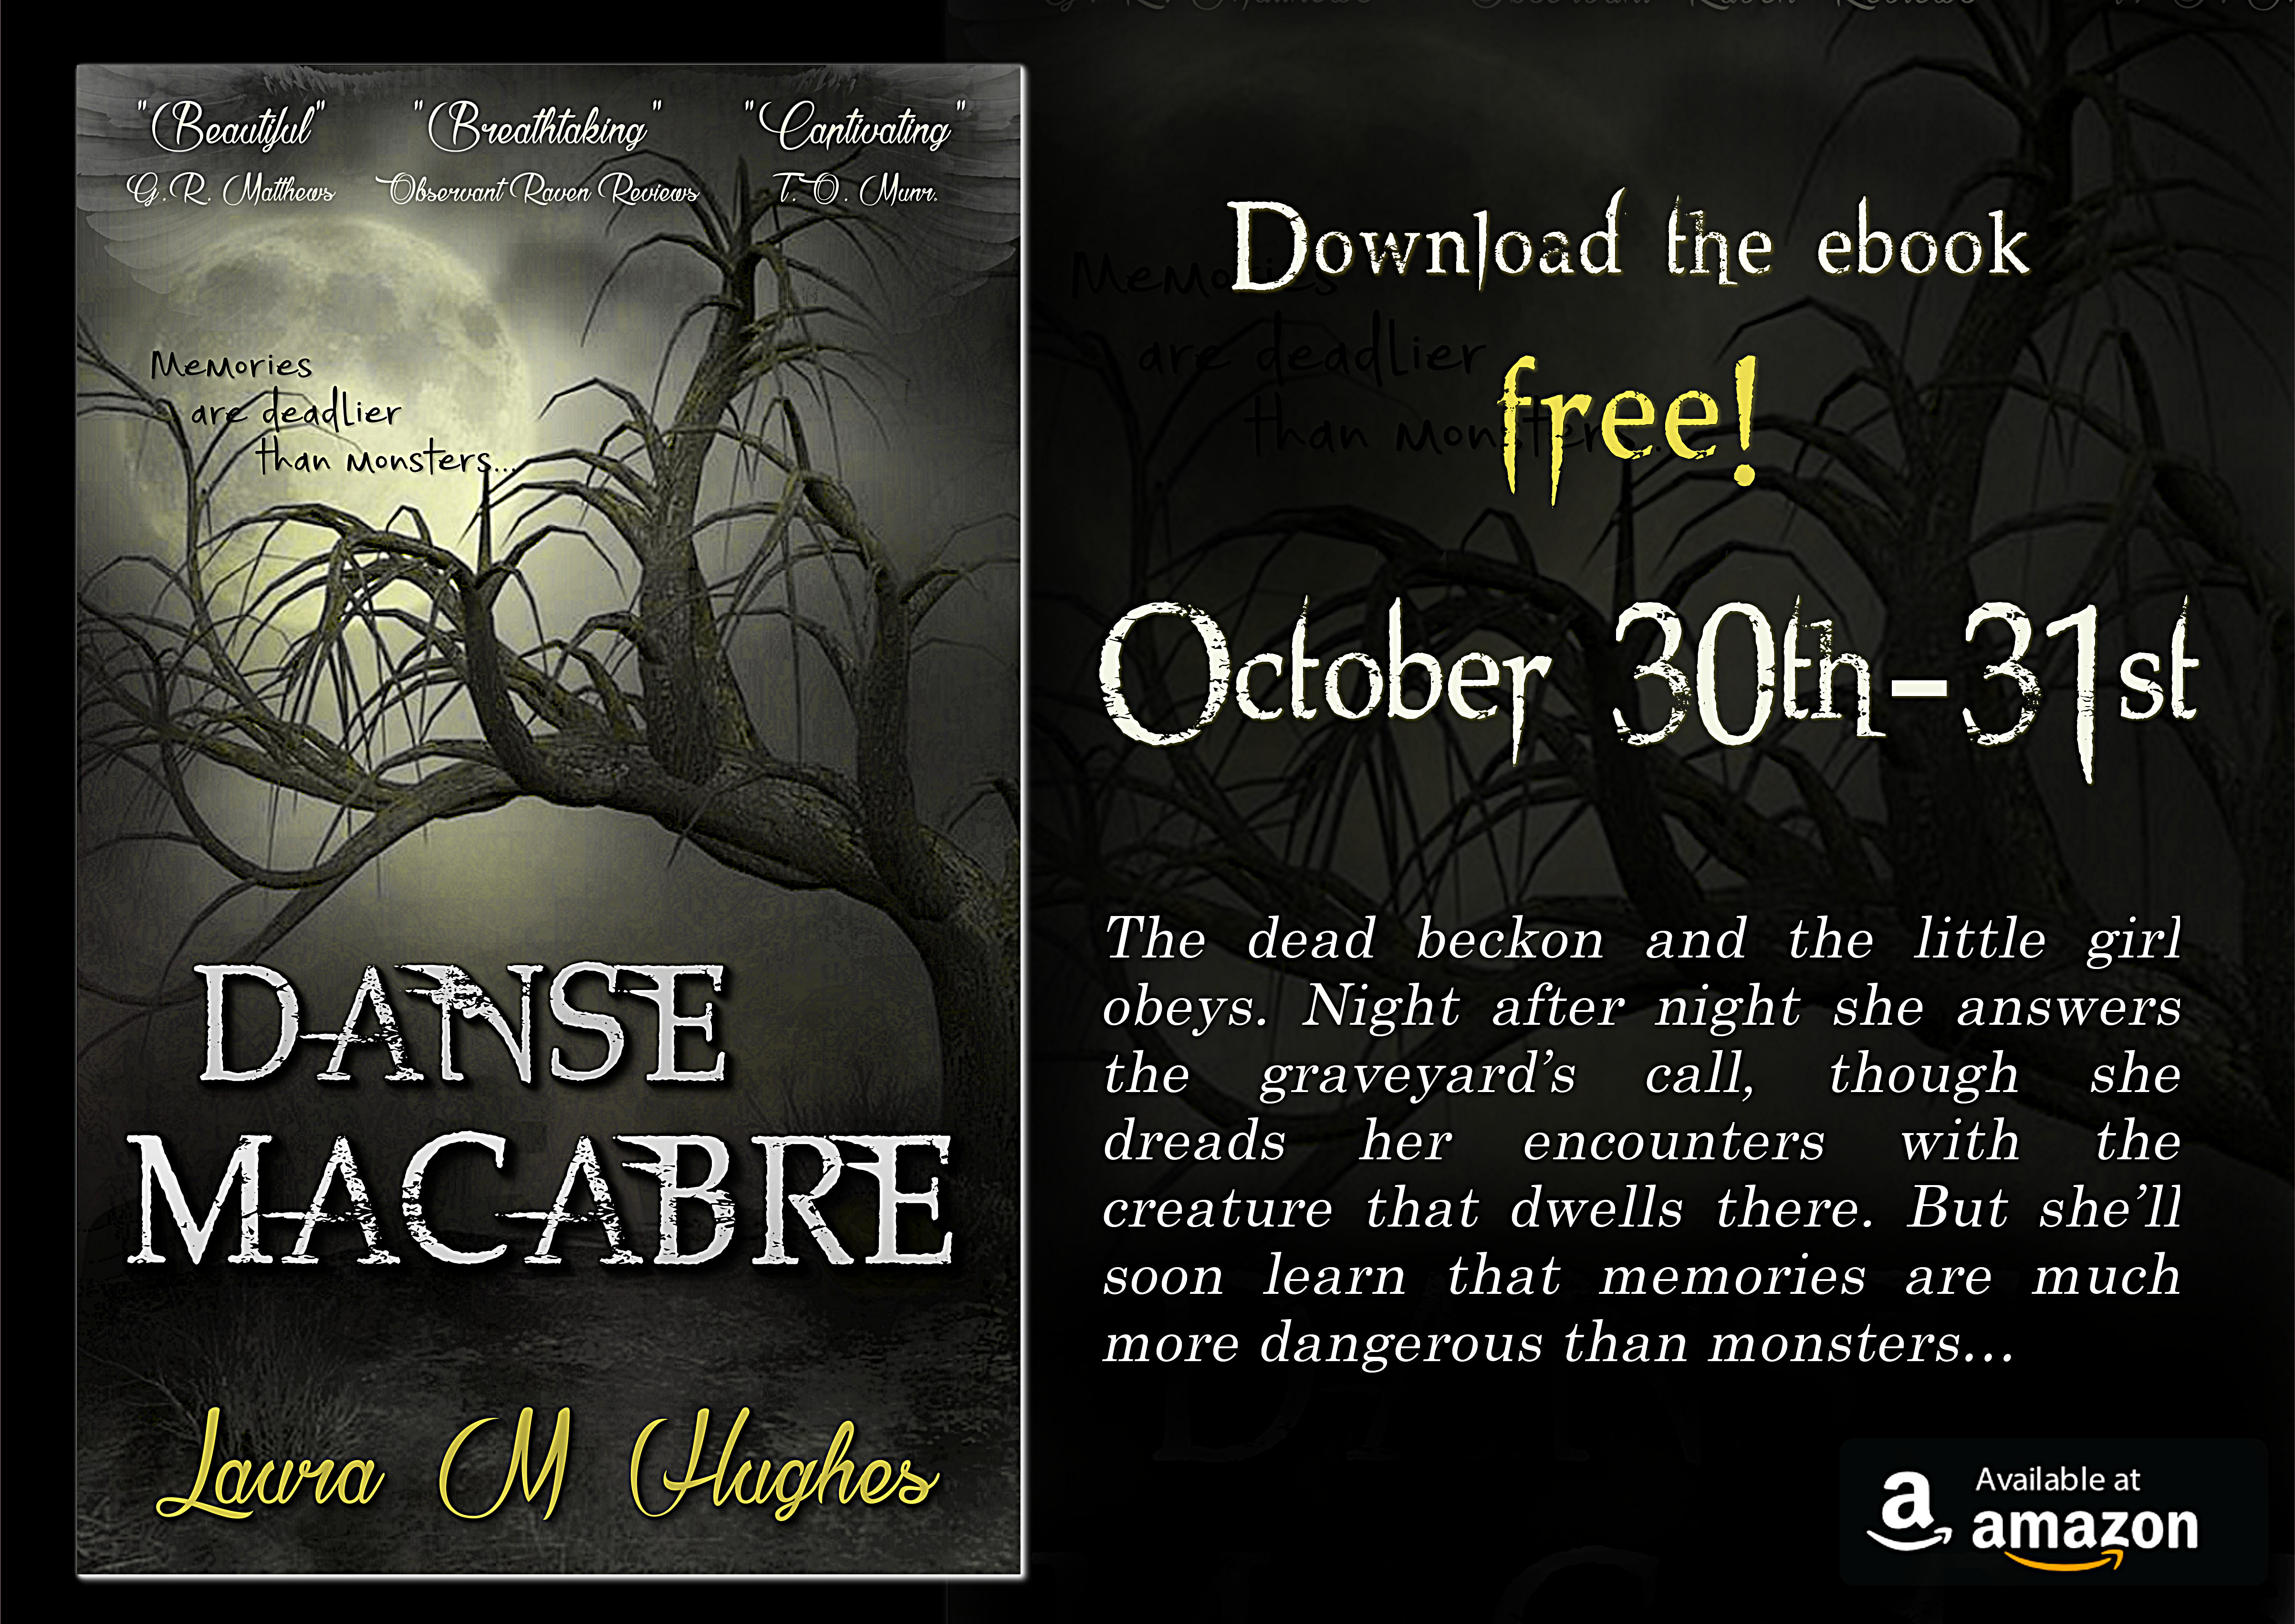 Danse Macabre - FREE for Halloween!